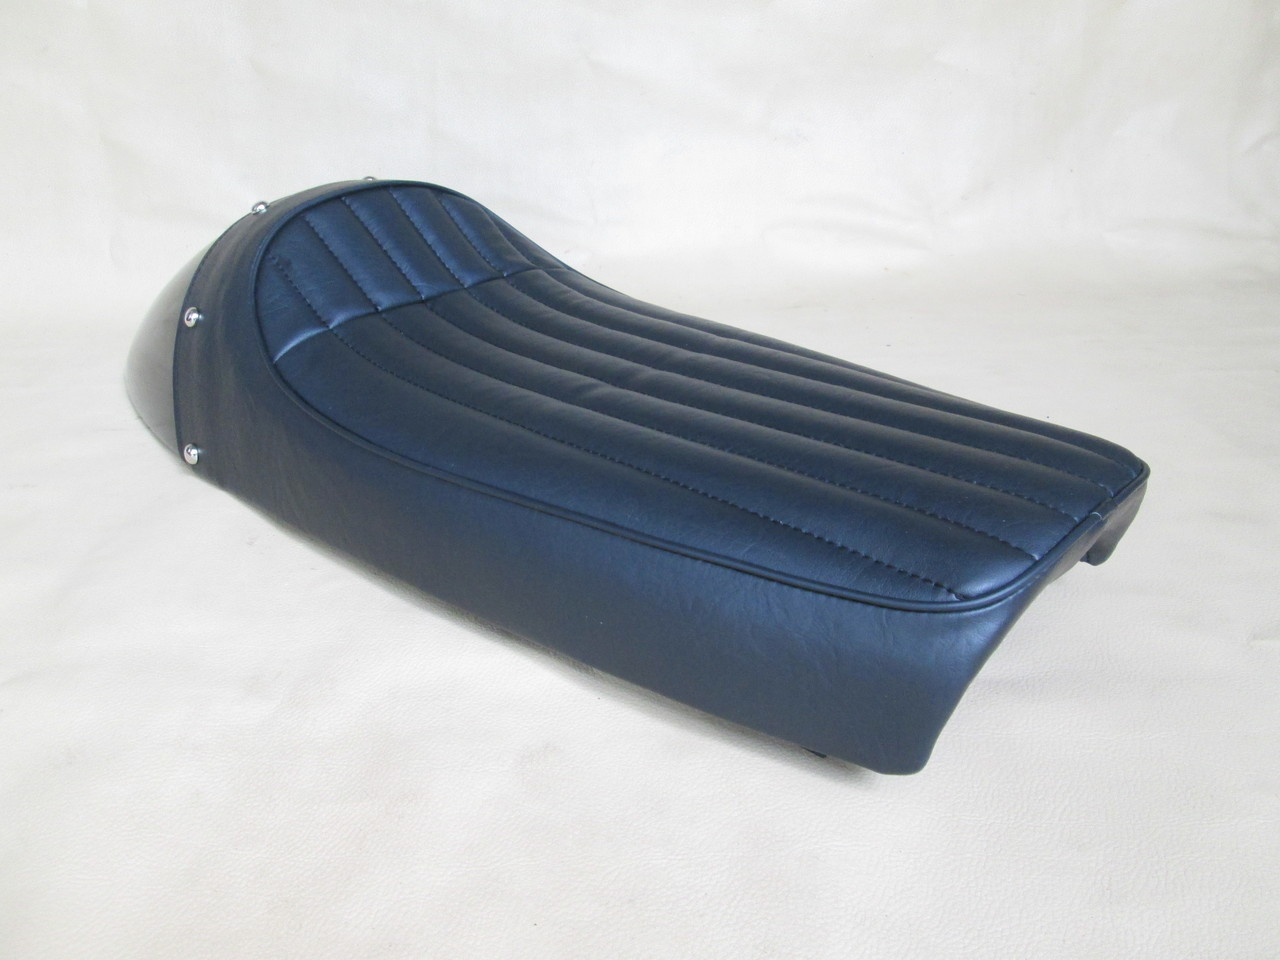 Yamaha XS1 XS2 DS7 R5 RD250 RD350 and RD400 XS650 standard and XS650 Special Modified seat pan, metal cowl #4143